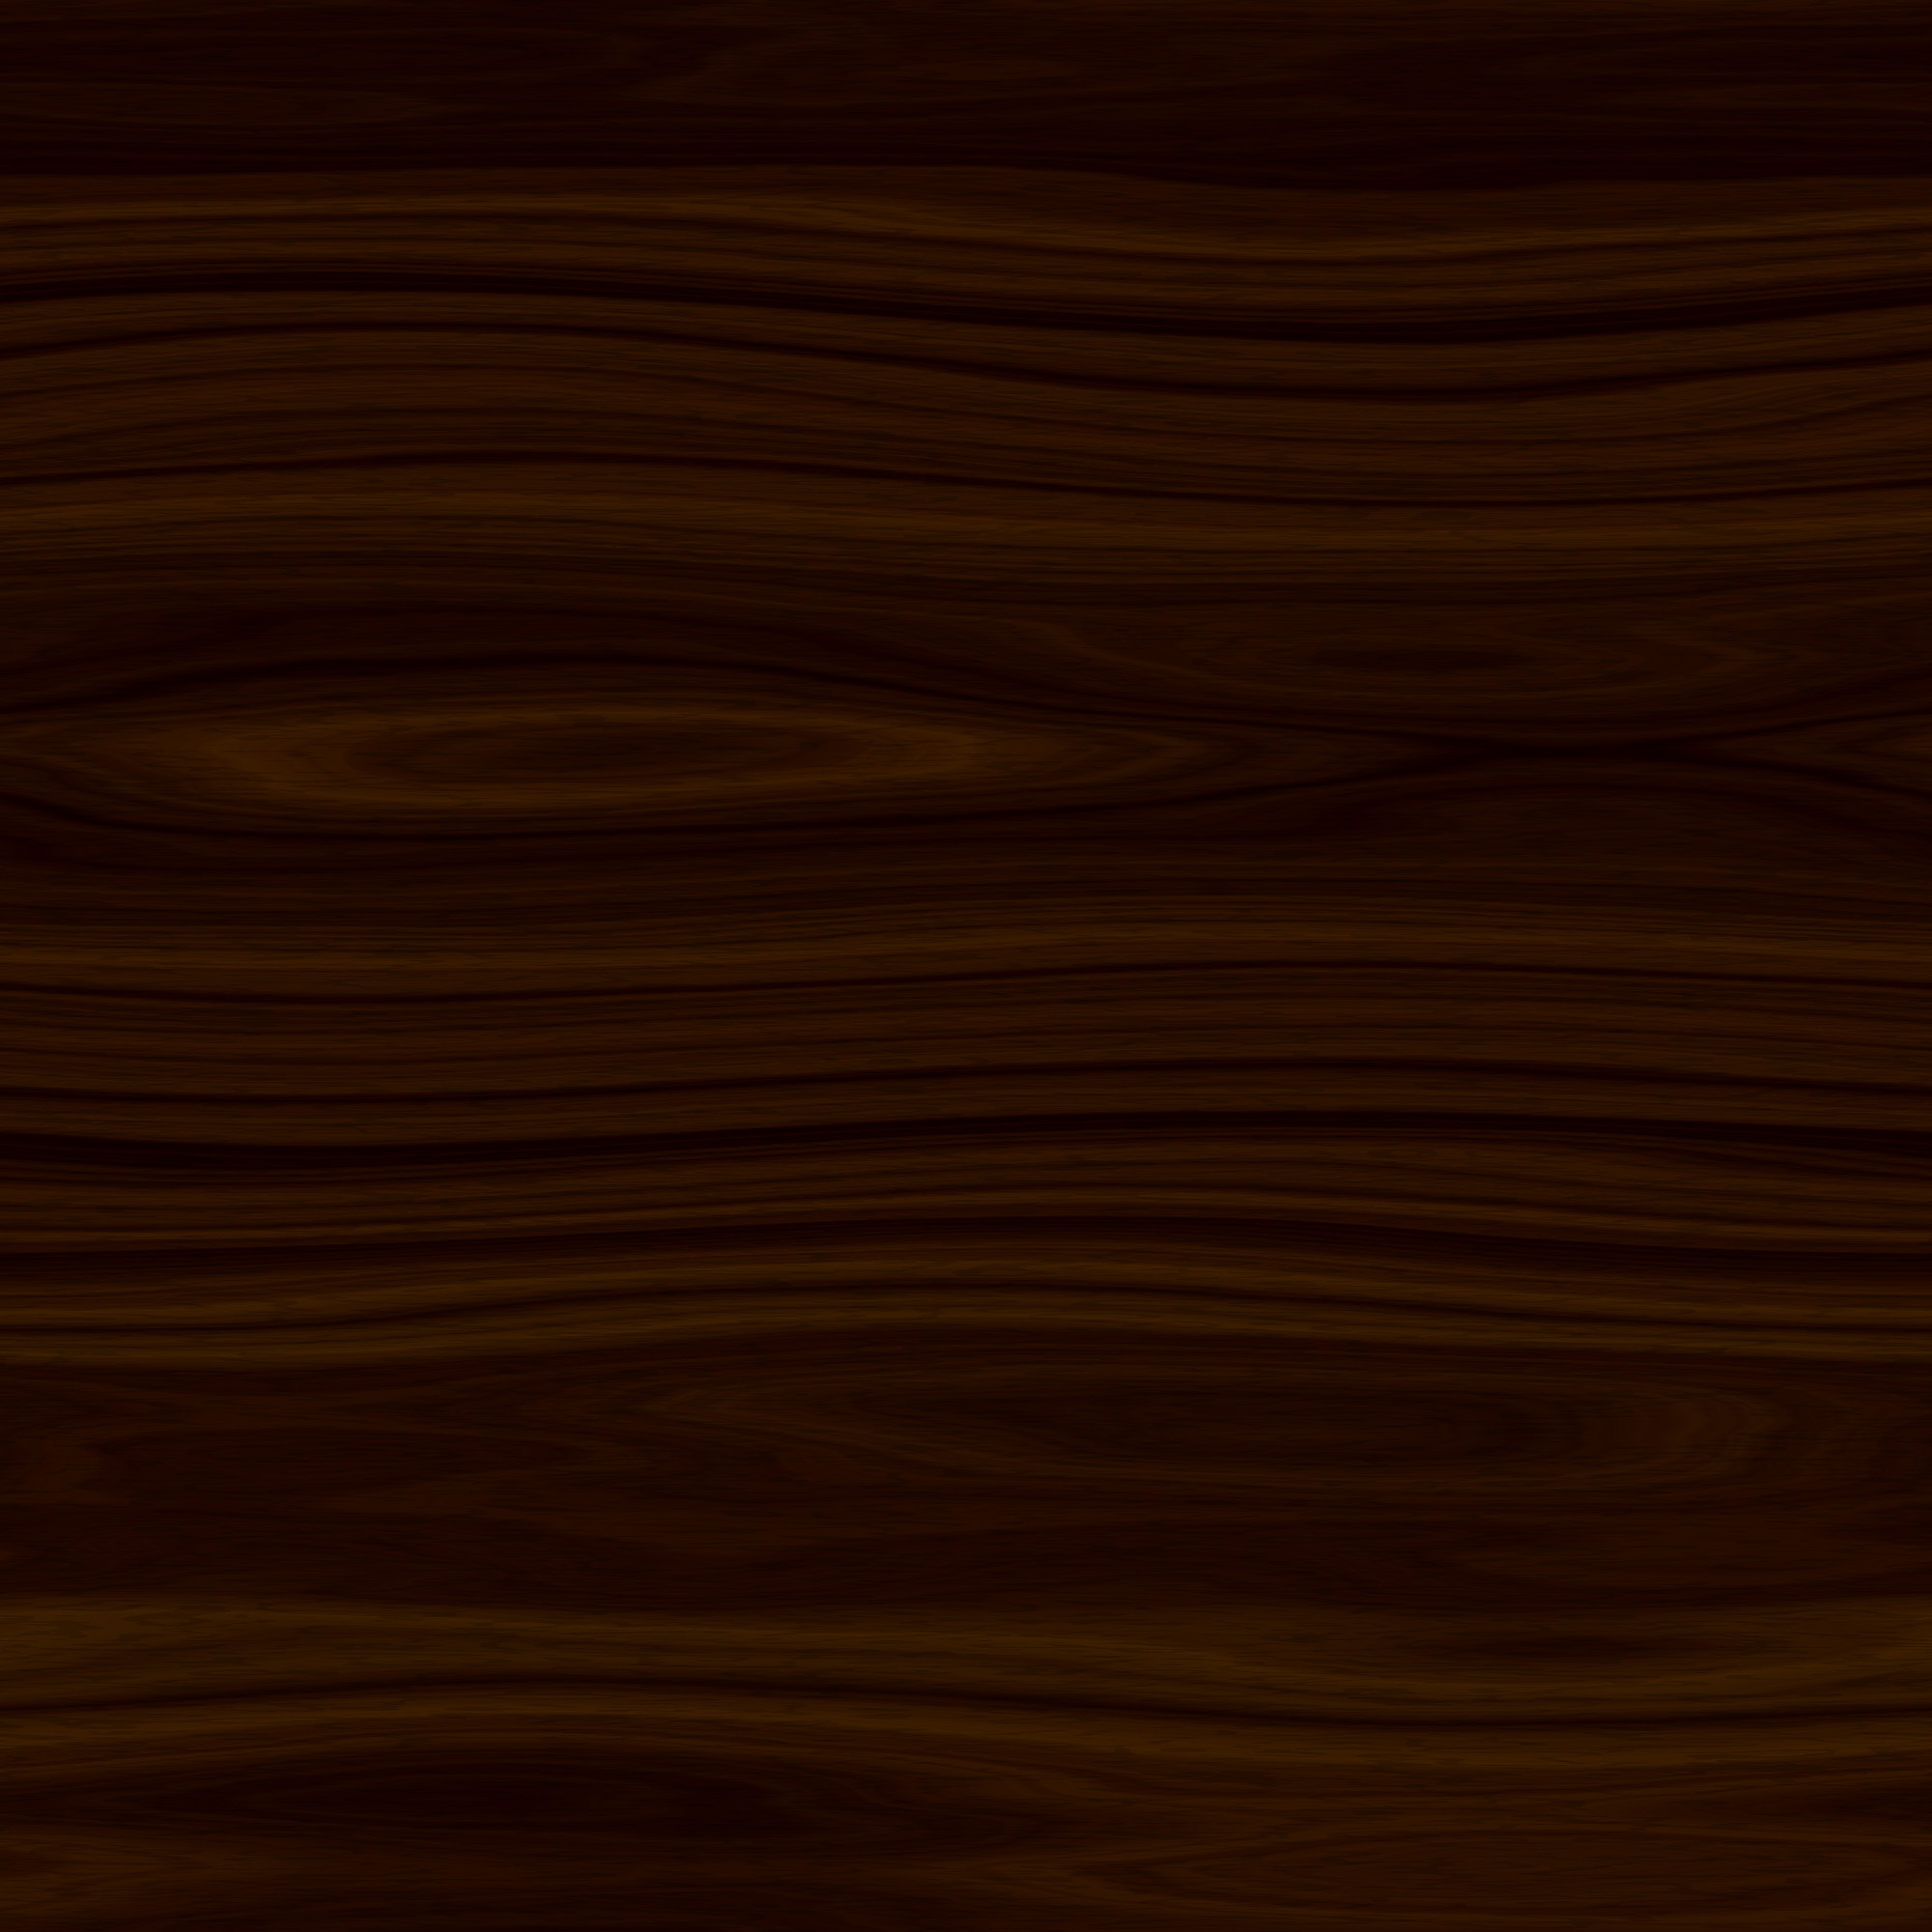 Dark Wood clipart deep Www  seamless Wood wooden